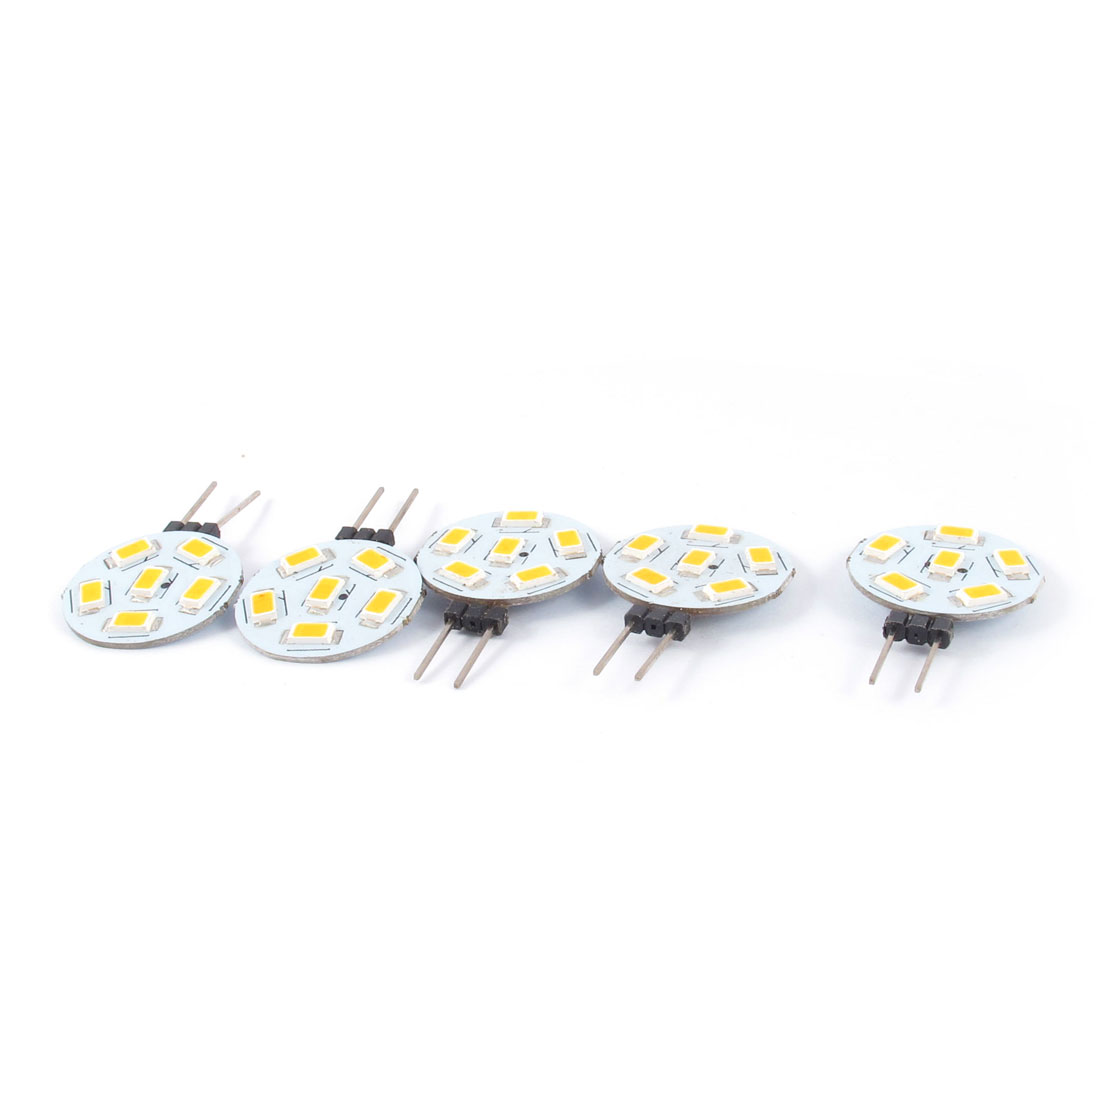 DC12V Warm White G4 Base 5730 SMD 6 LEDs Car Side Pin Light Lamp 5pcs